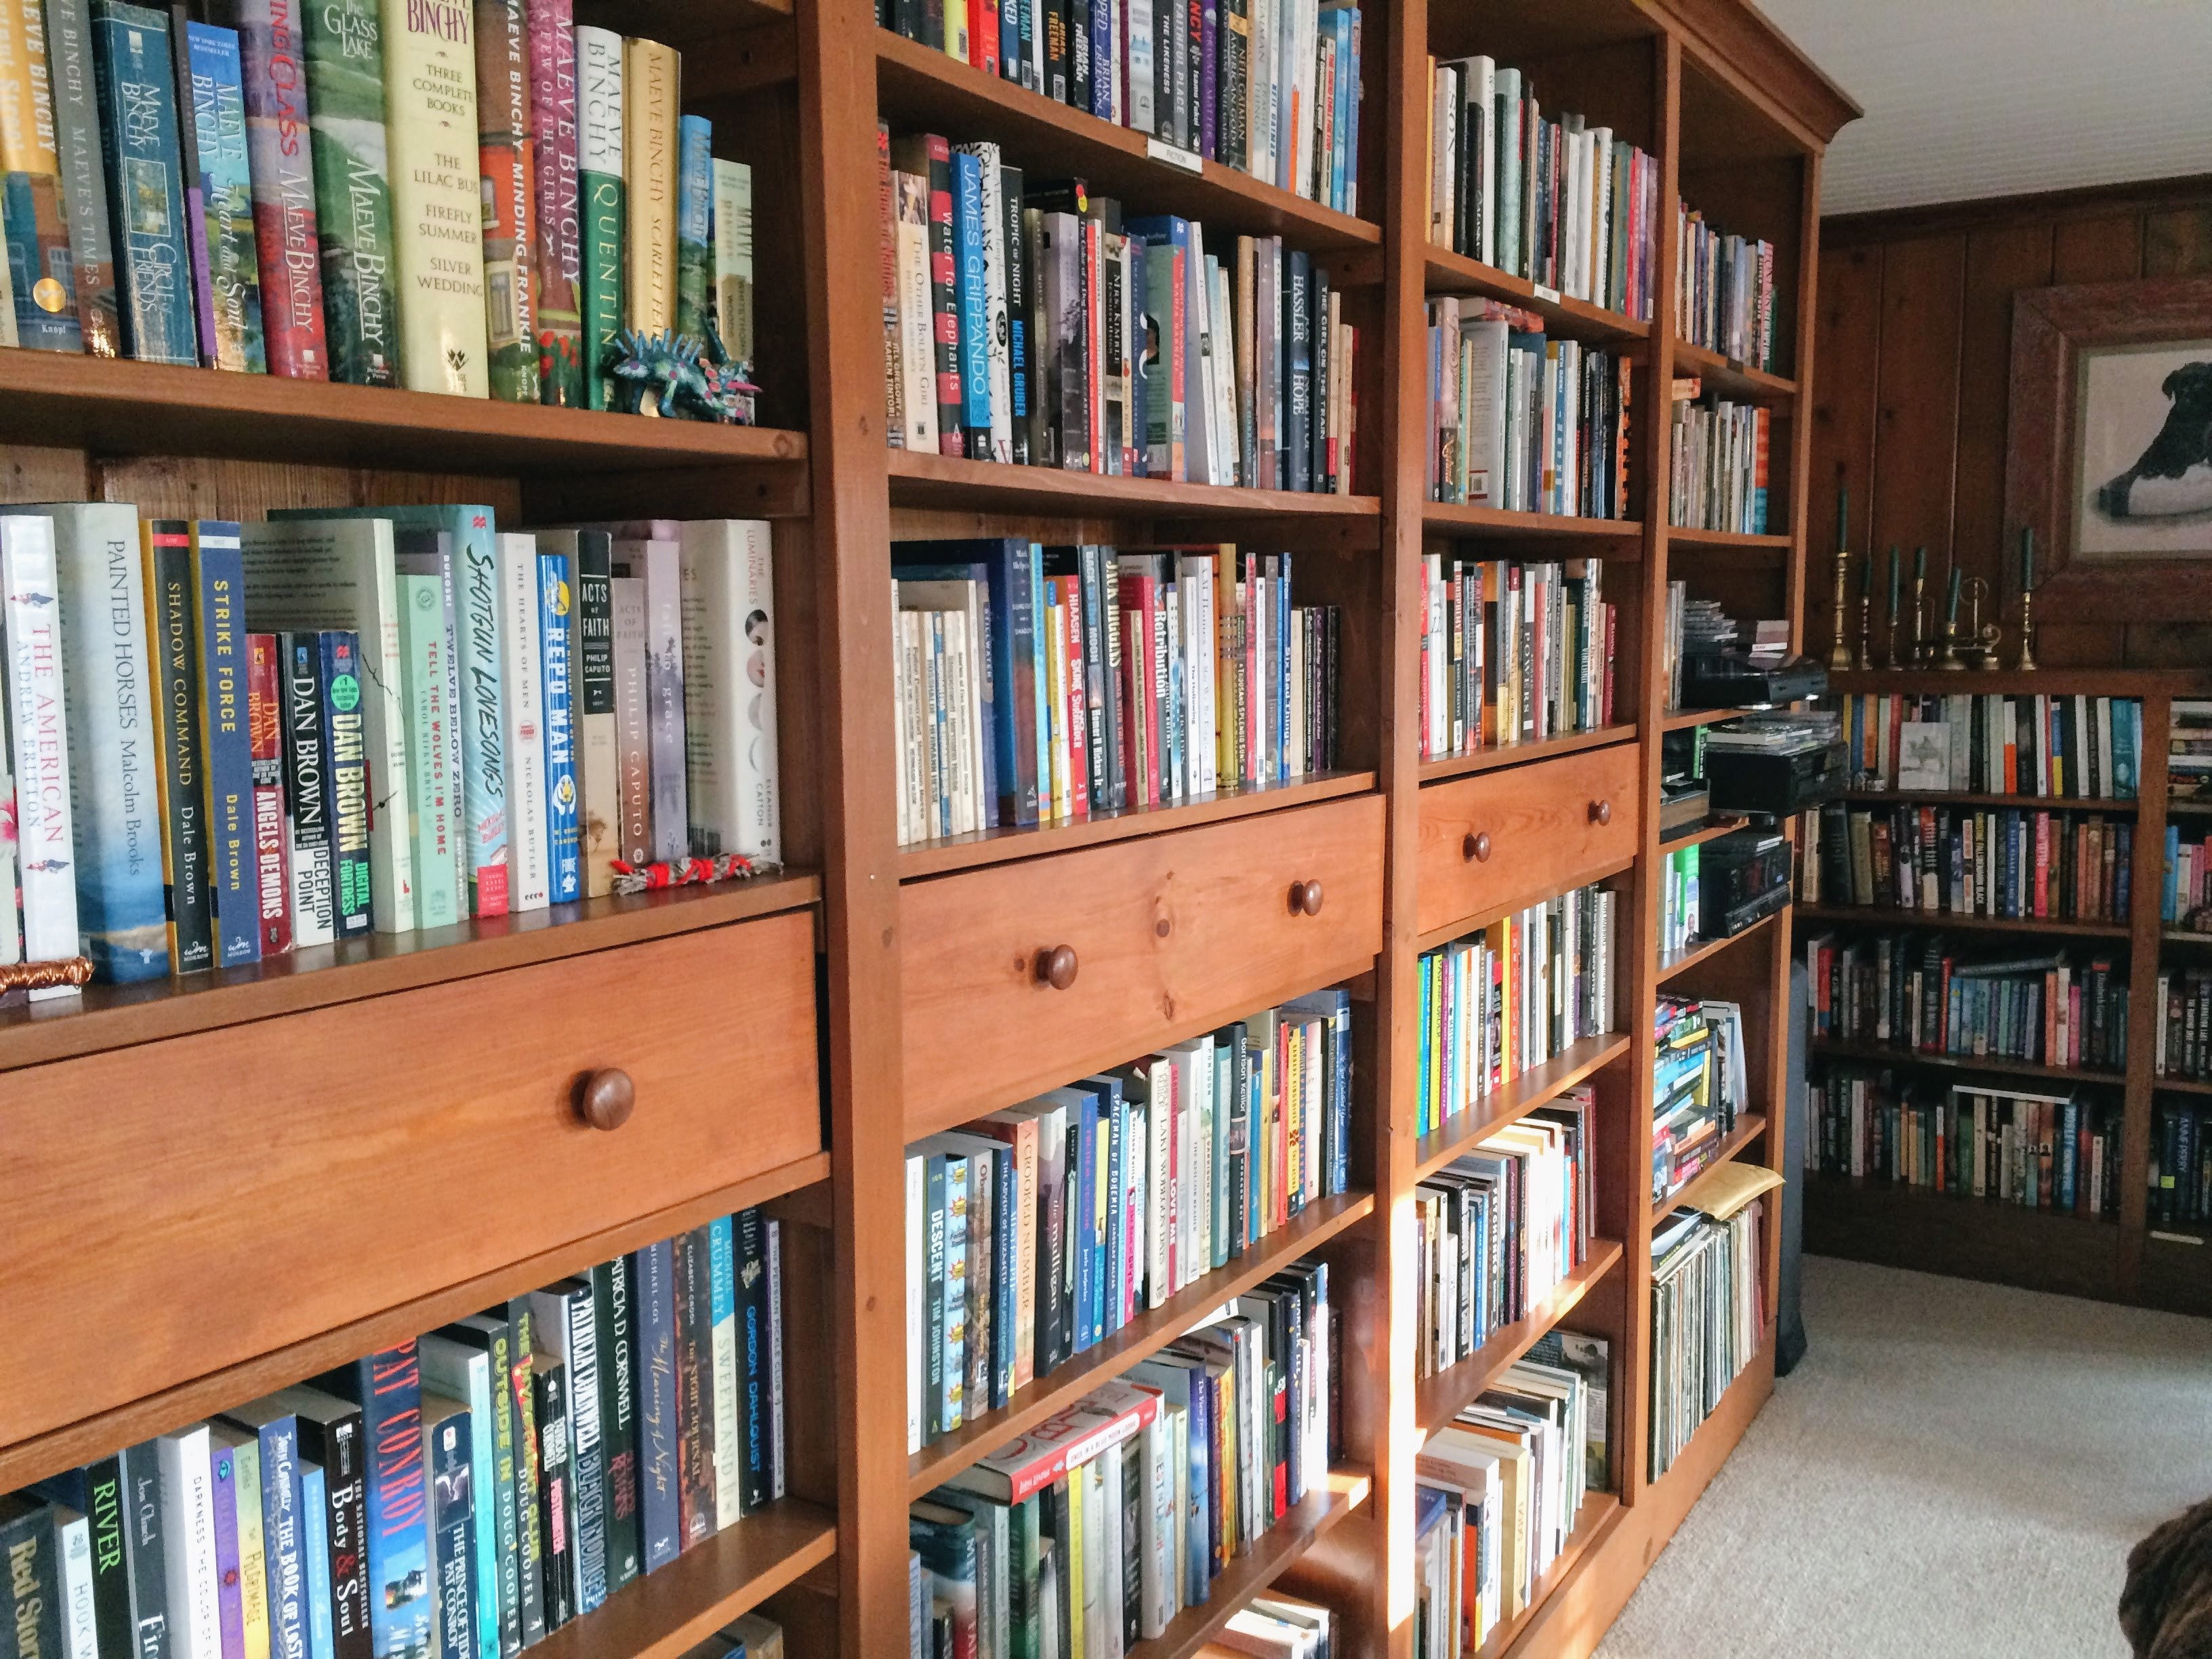 Caption: Randy and Kathy McCarty's Book Collection